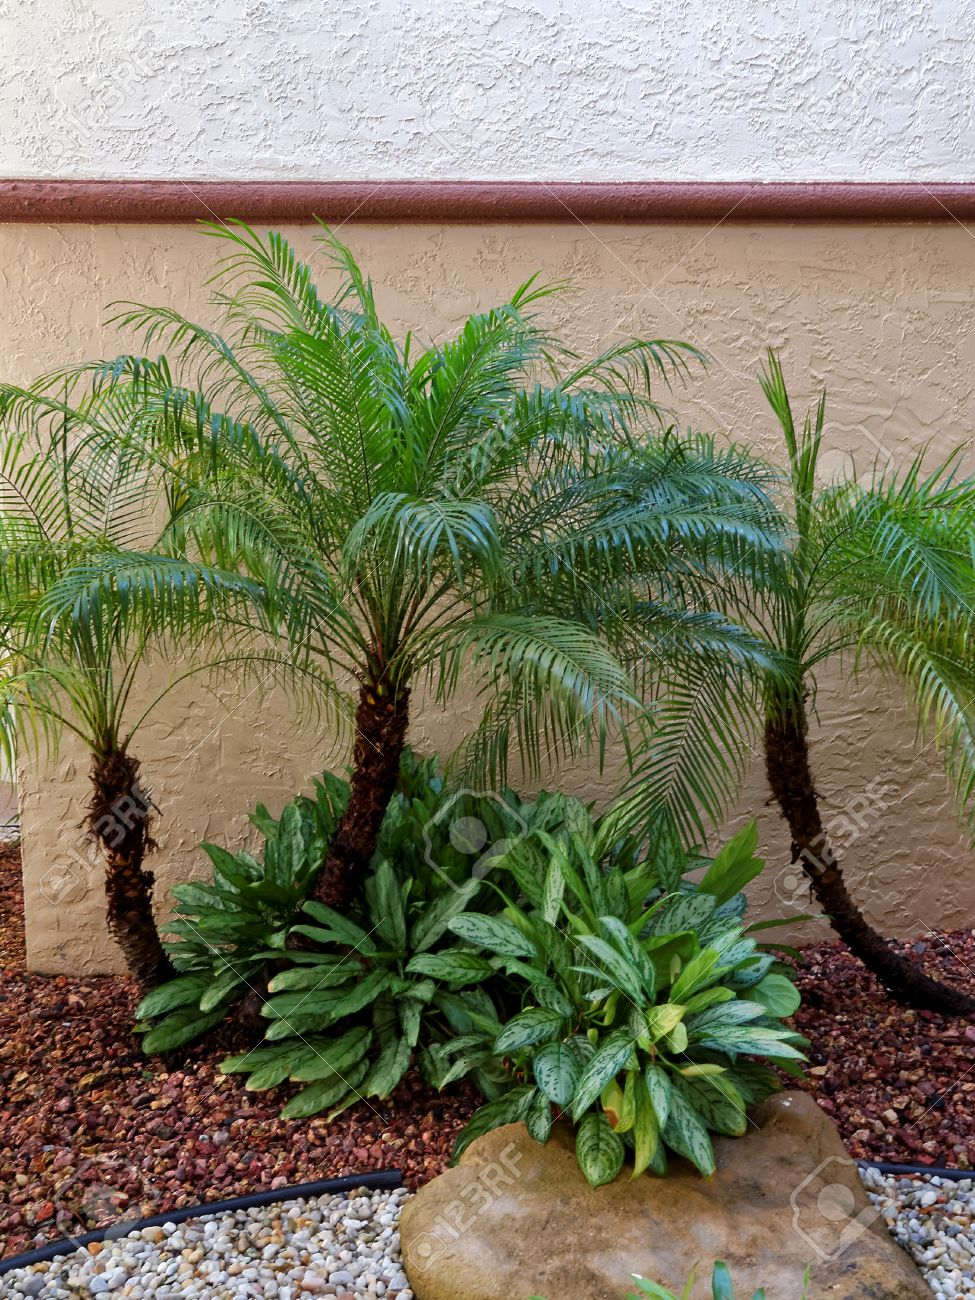 Small Palm Trees in rock garden with foliage brown rocks and.. on shrubs around tree, waterfall around tree, border around tree, putting pavers around tree, hosta around tree, wood bench around tree, flowers around tree, plants around tree, block wall around tree, orchid around tree, roses around tree, iris around tree, patio around tree, pergola around tree, sculpture around tree, pond around tree, container gardening around tree, vine around tree, gazebo around tree, ground cover around tree,